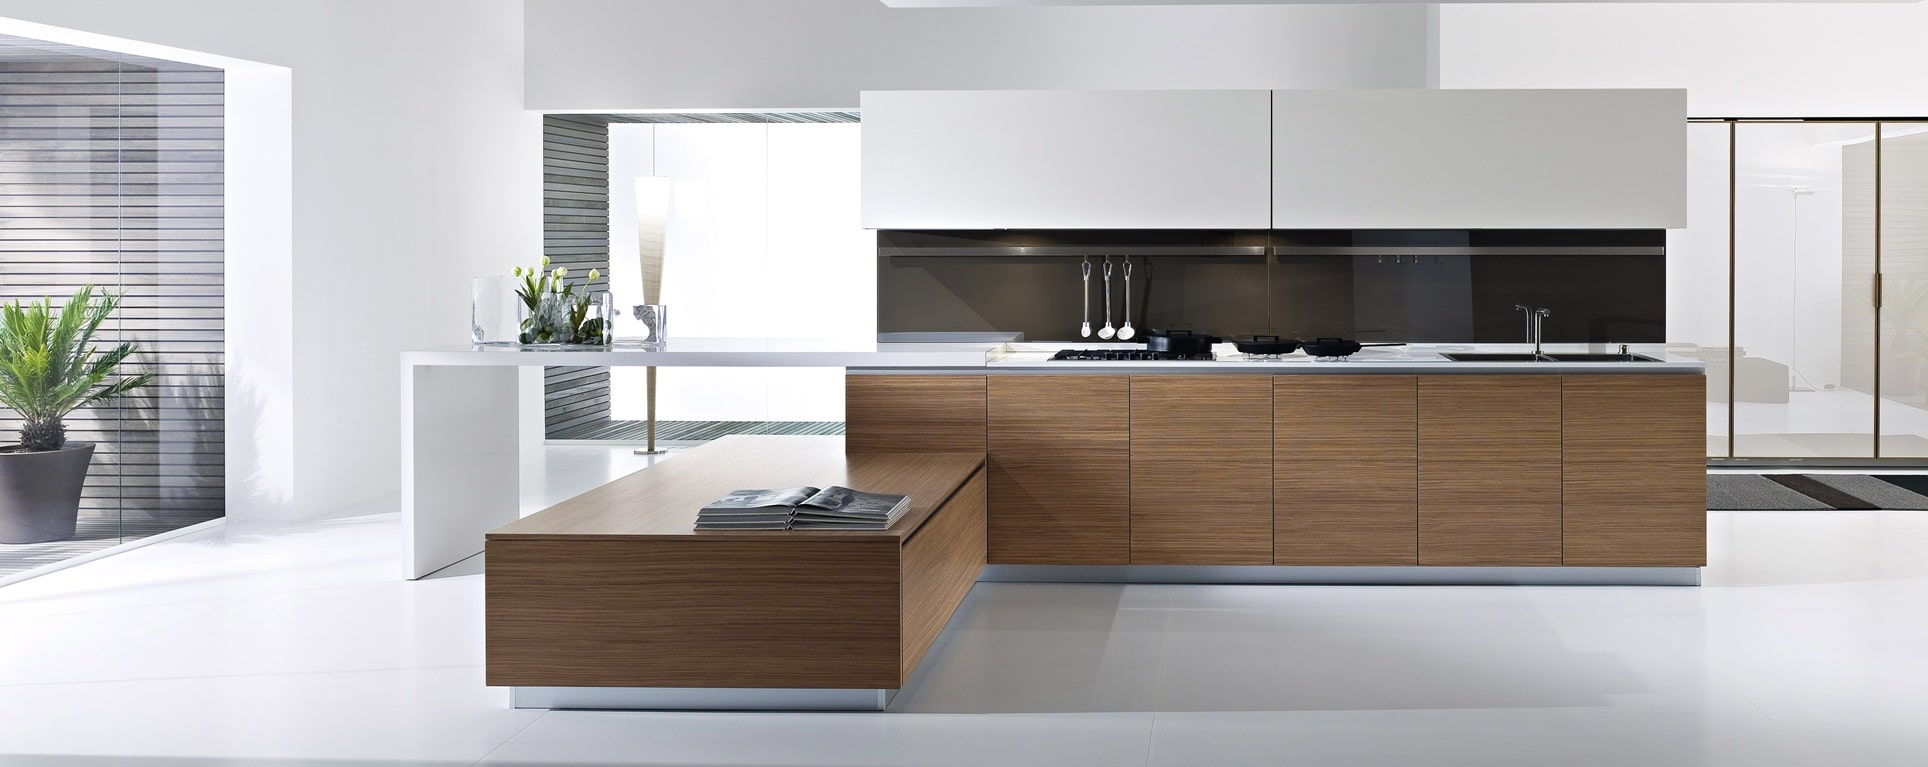 new kitchen design lebanon youtube within kitchen design